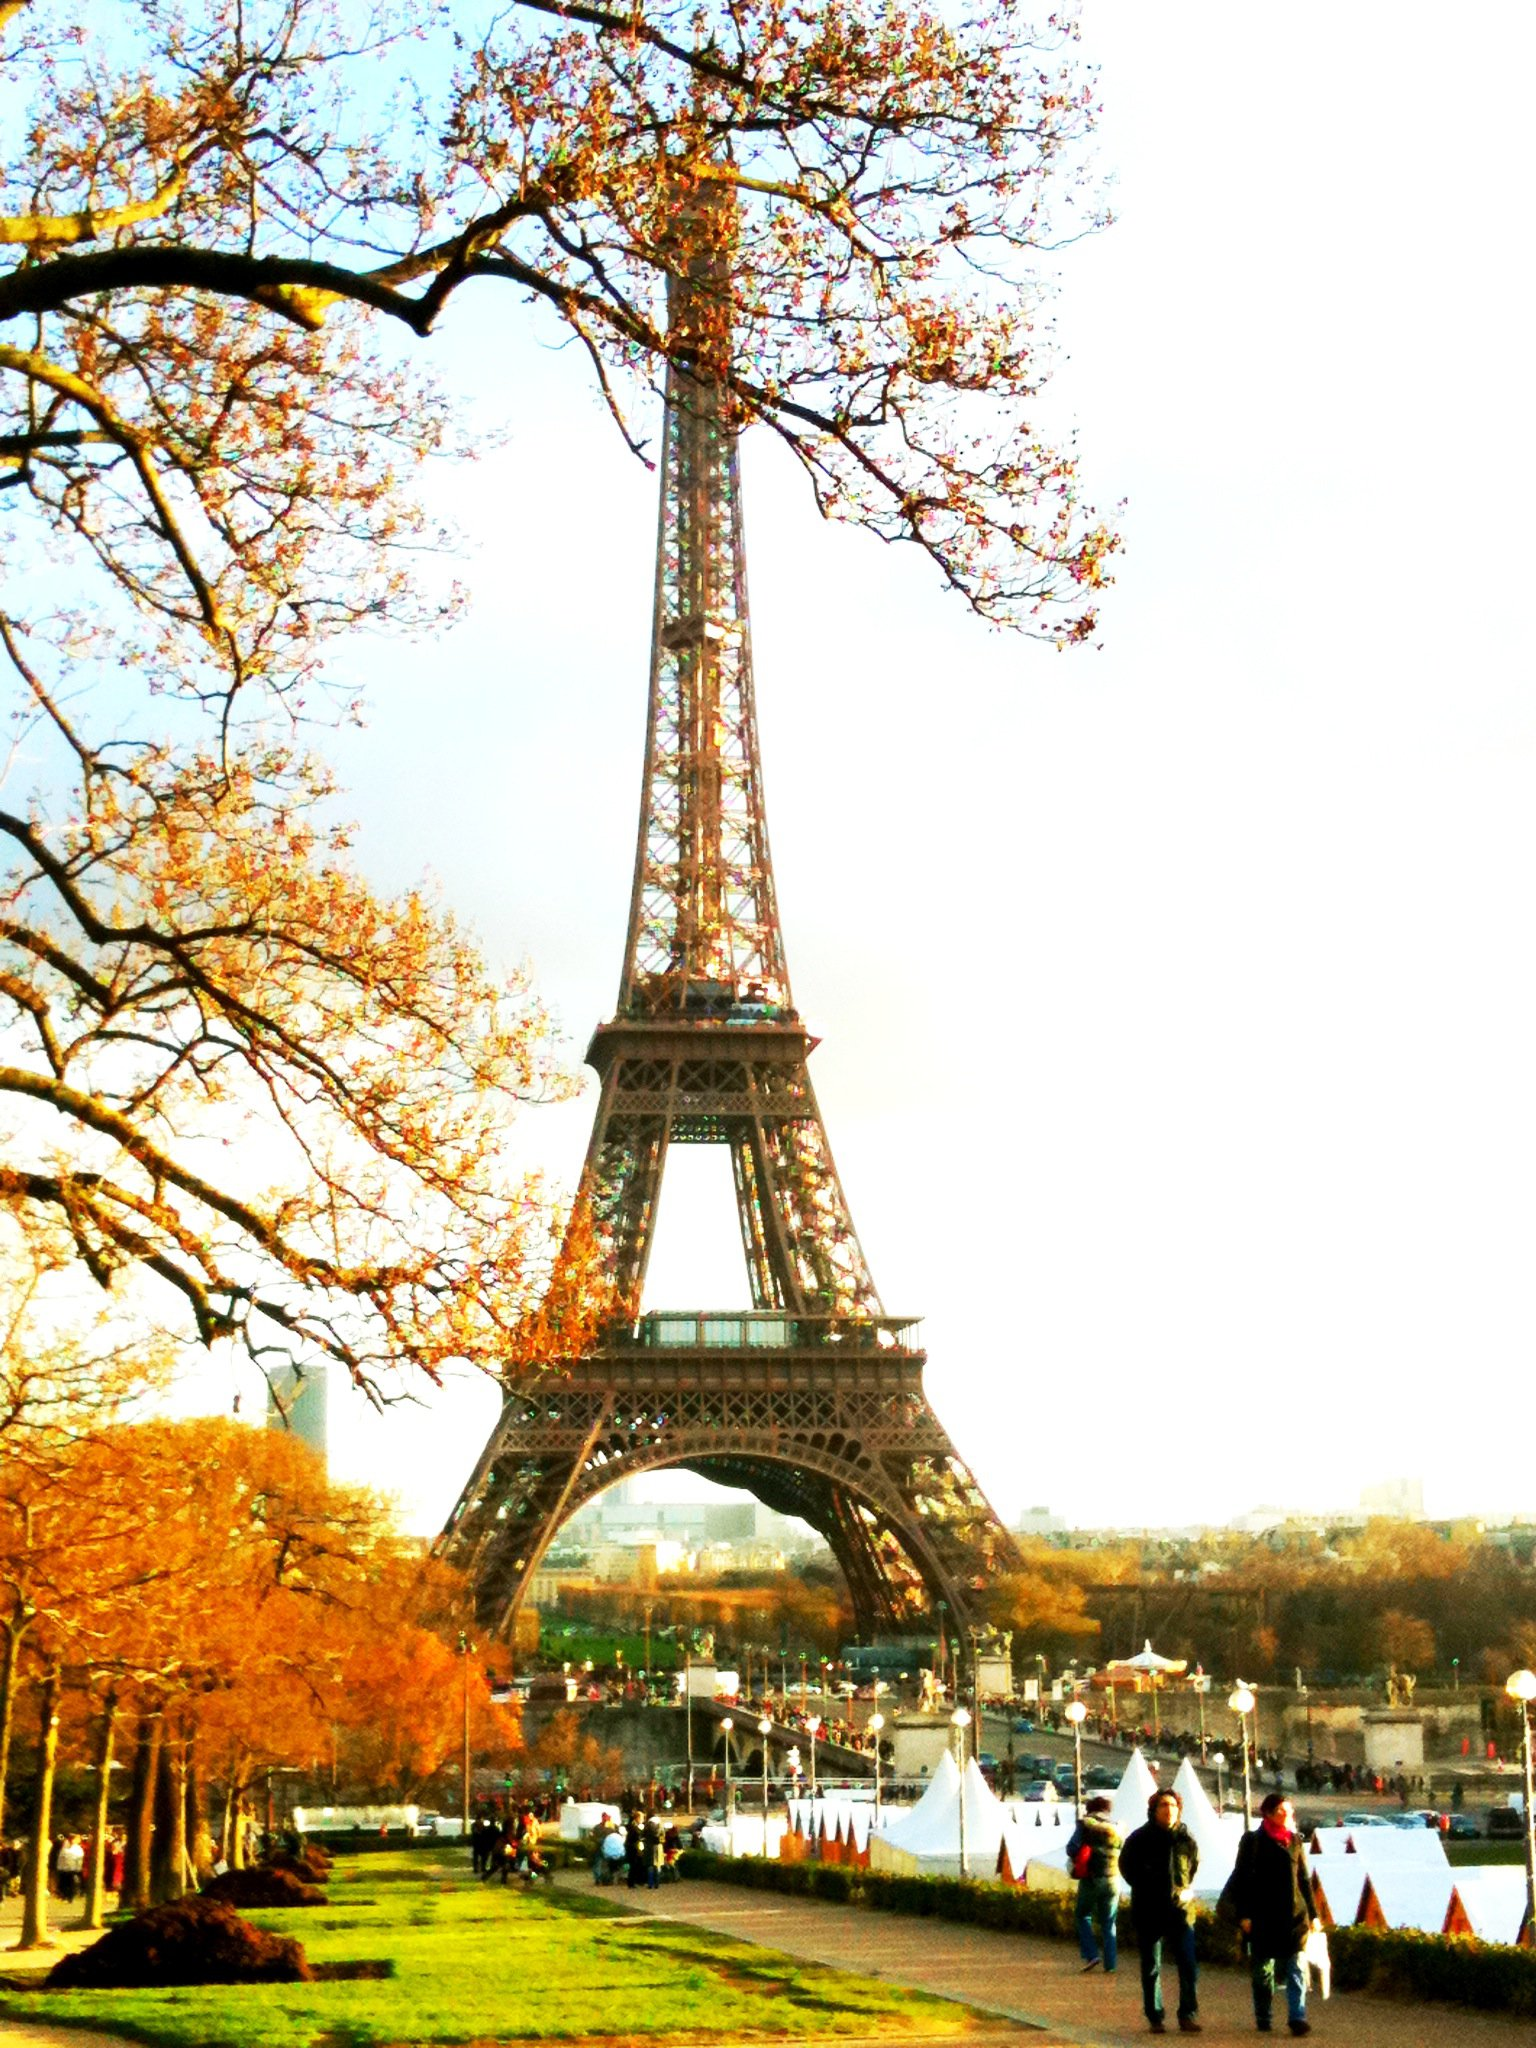 Eiffel tower in autumn photo